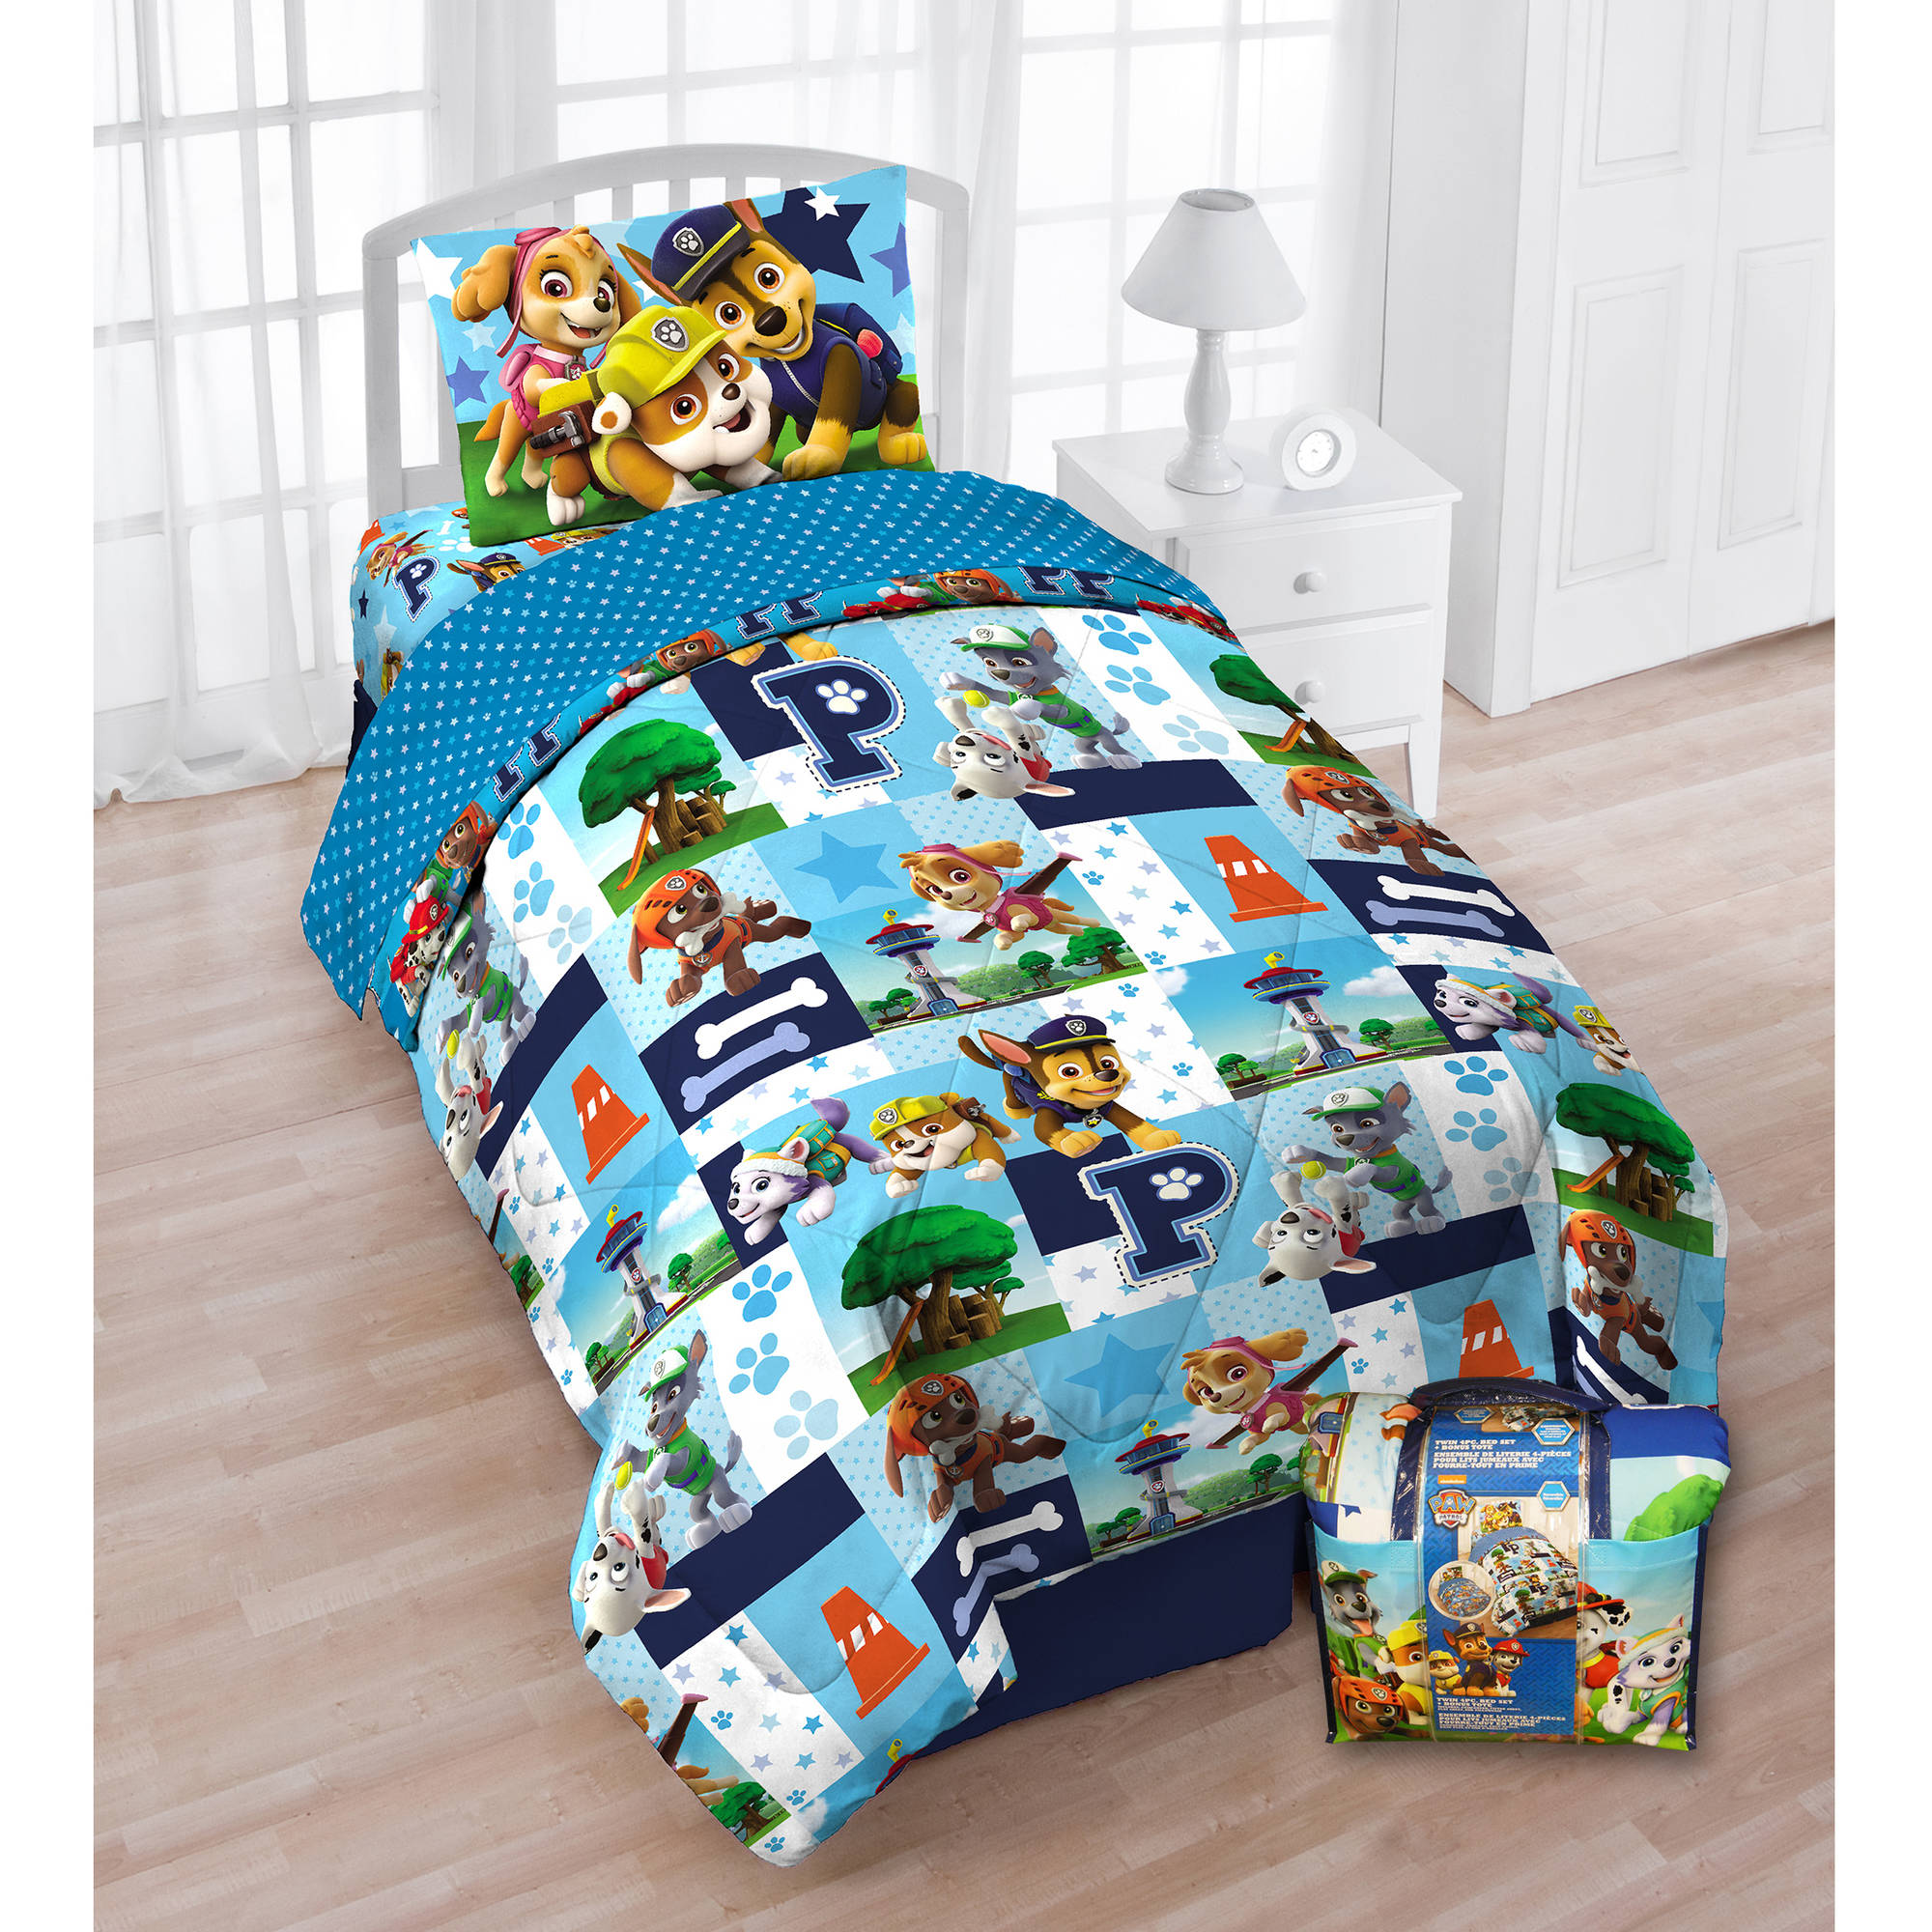 Kids  Bedding Sets. Kids  Bedding   Walmart com